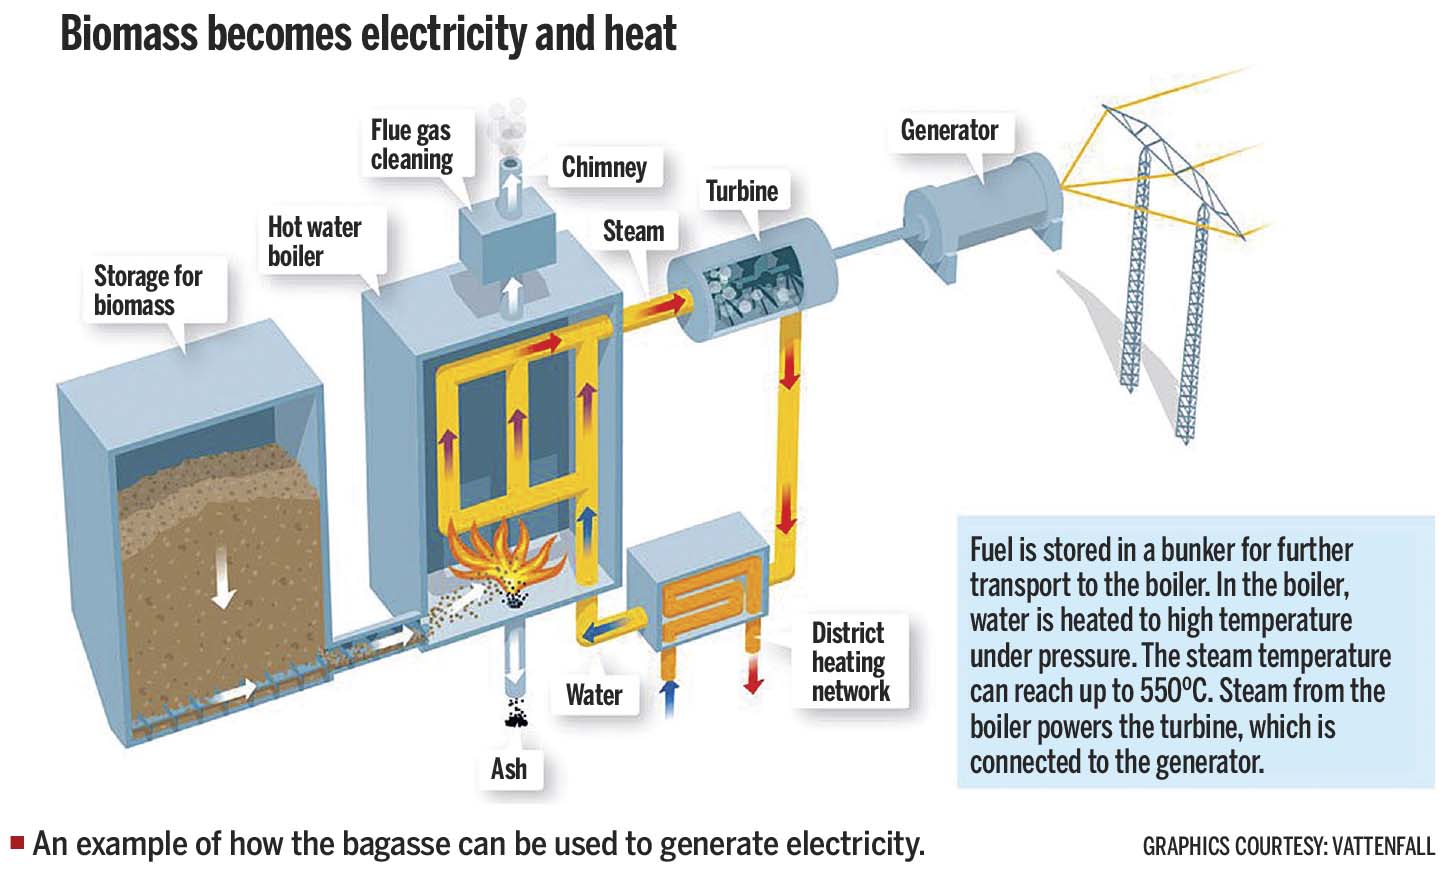 Sugar mills in Nepal poised to generate electricity